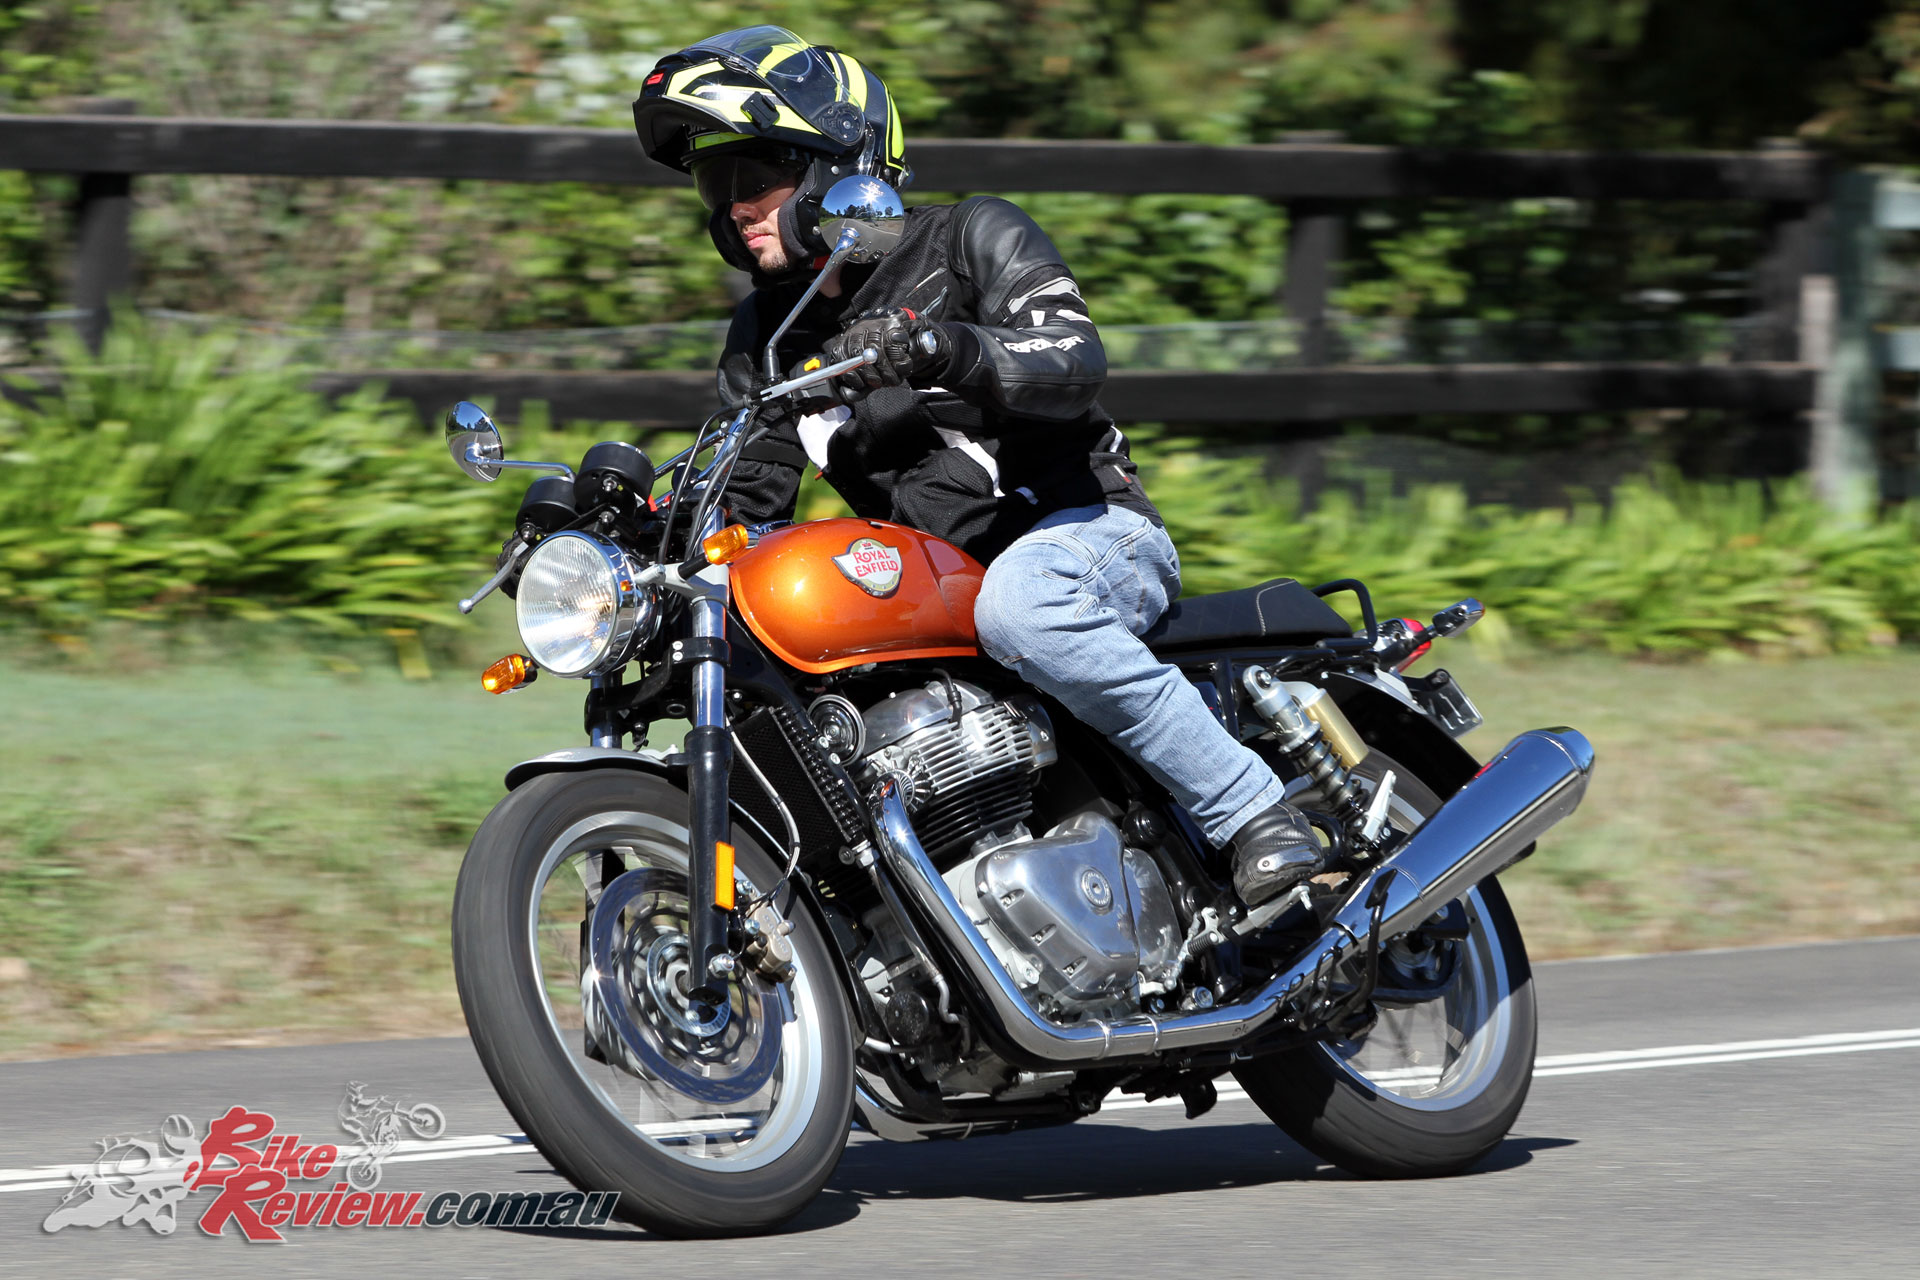 2019 Royal Enfield Interceptor 650 Review